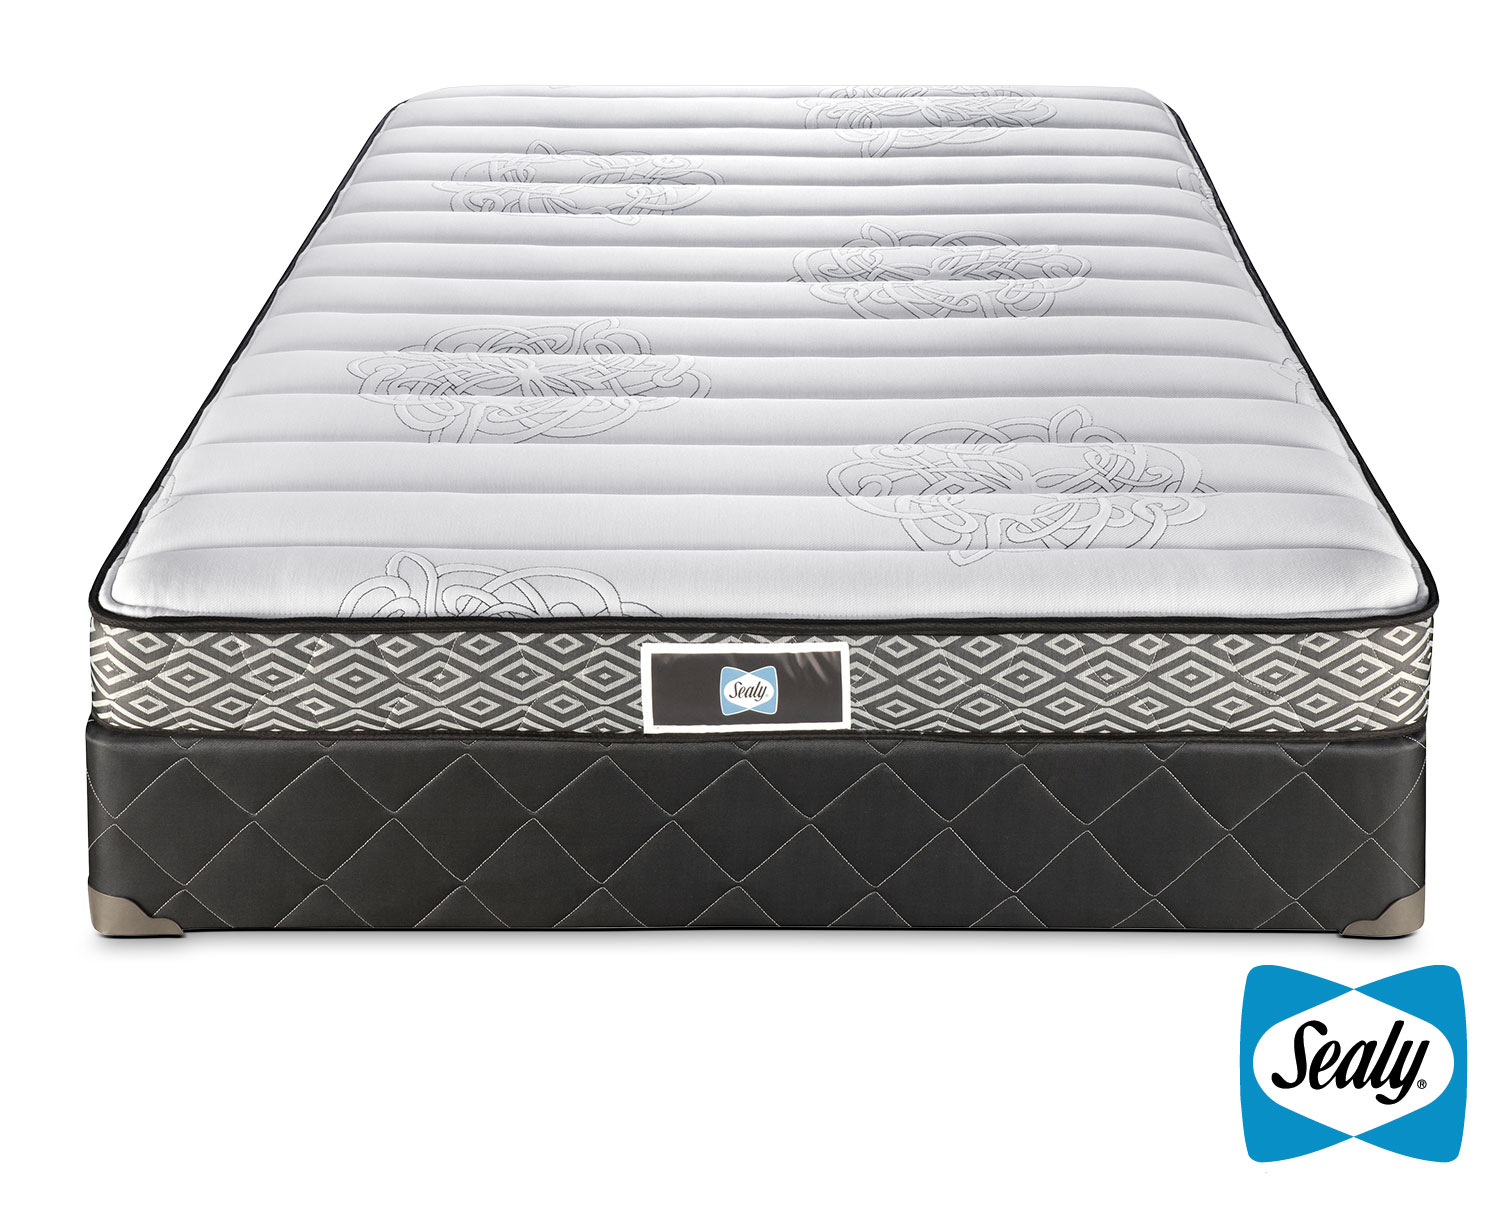 Mattresses and Bedding - Sealy Glacier Firm Full Mattress and Boxspring Set